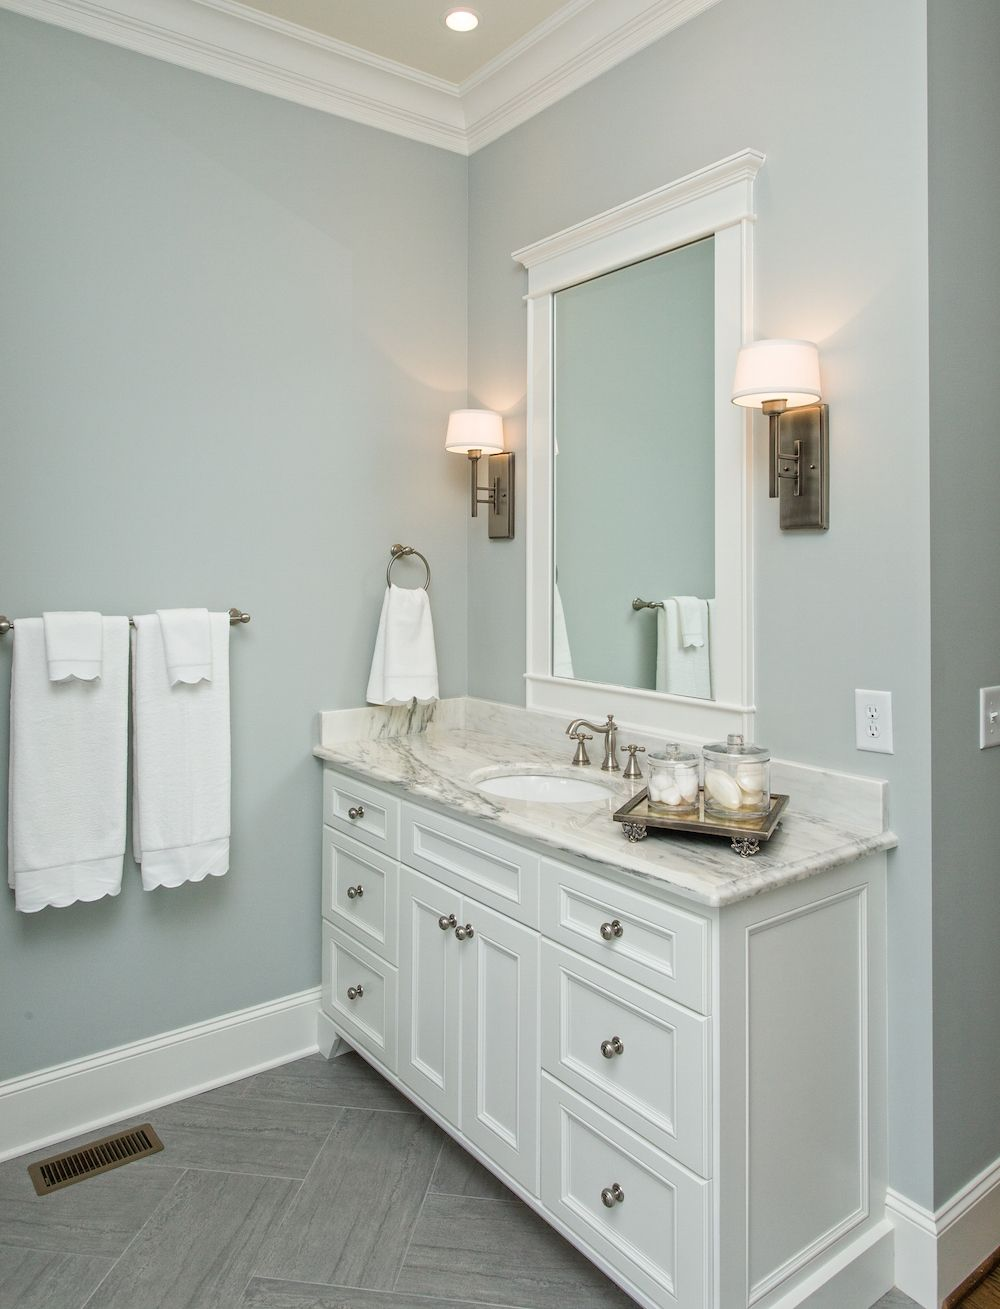 Beautiful Master Bathroom Complete With His And Hers Vanities In This Custom Built Home In Greenvill Bathrooms Remodel Master Bathroom Bathroom Interior Design